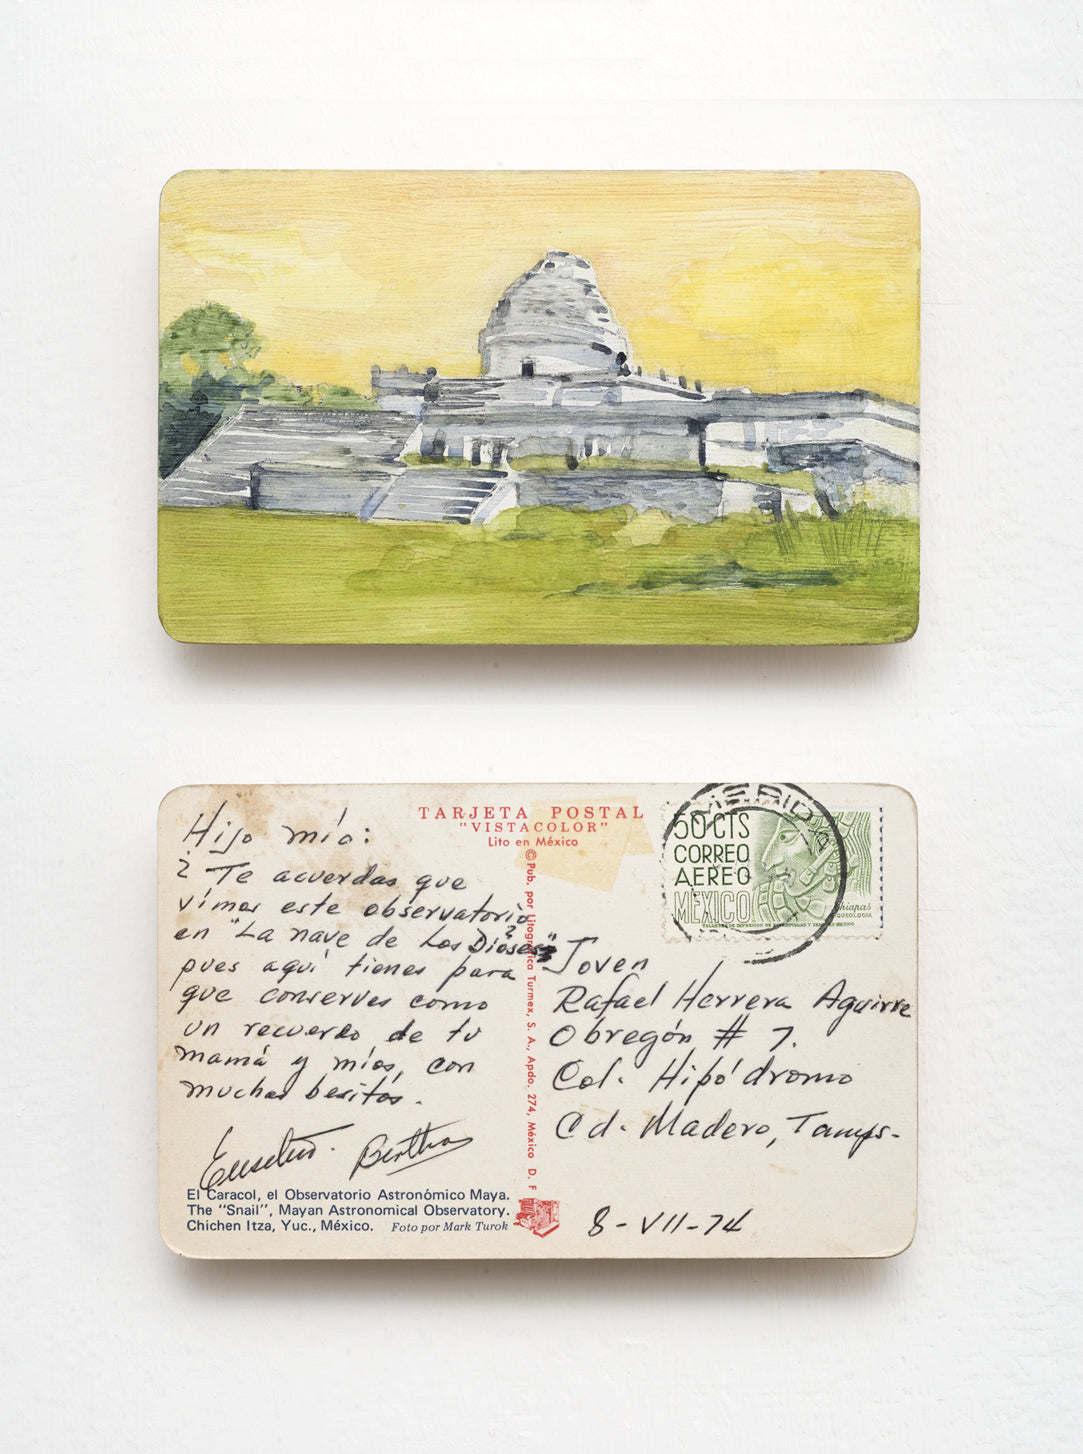 Watercolor Art on vintage postcard by mexican artist Javier Areán. Observatorio